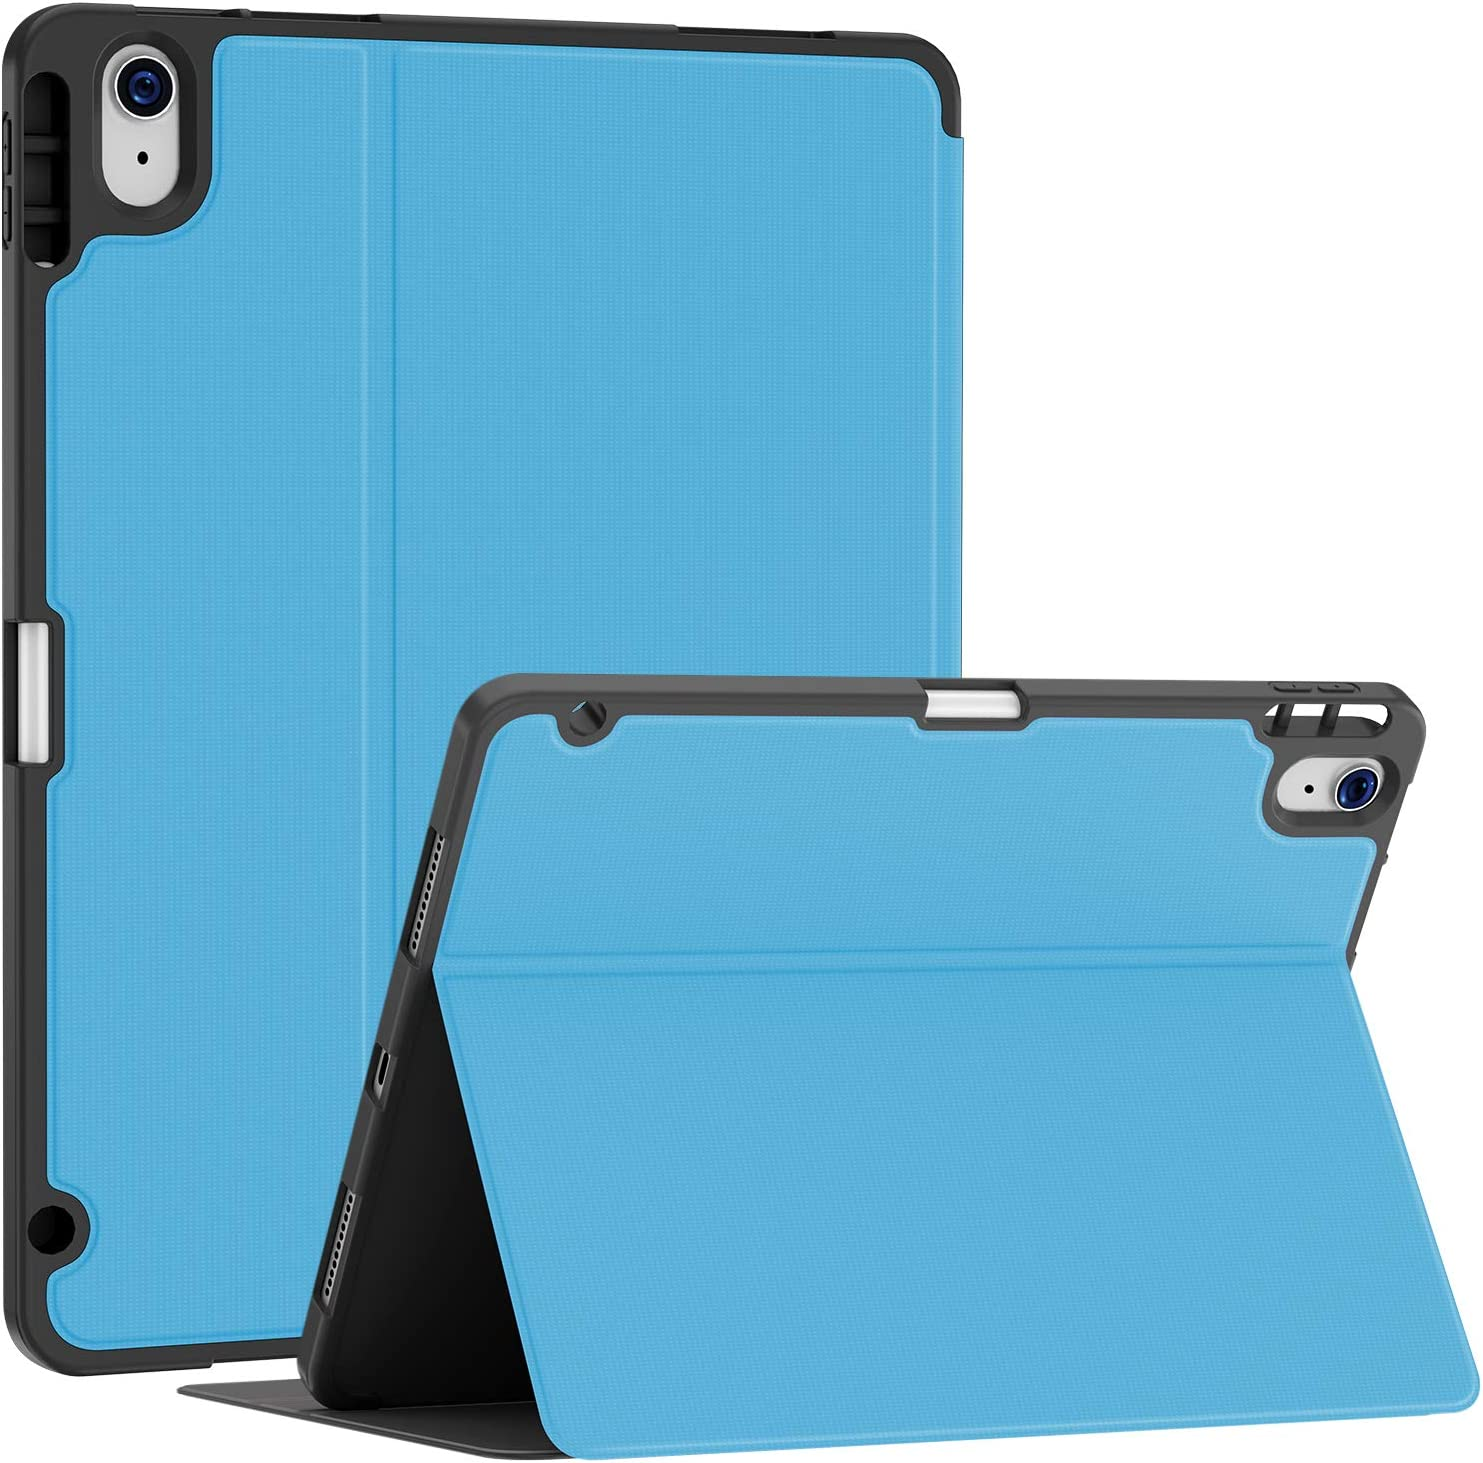 Soke Case for iPad Air 4th Generation 2020, iPad 10.9'' Case with Pencil Holder, Premium Shockproof Stand Folio Case[Support Touch ID + The 2nd Pencil Charging], Smart Soft TPU Back Cover, Light Blue